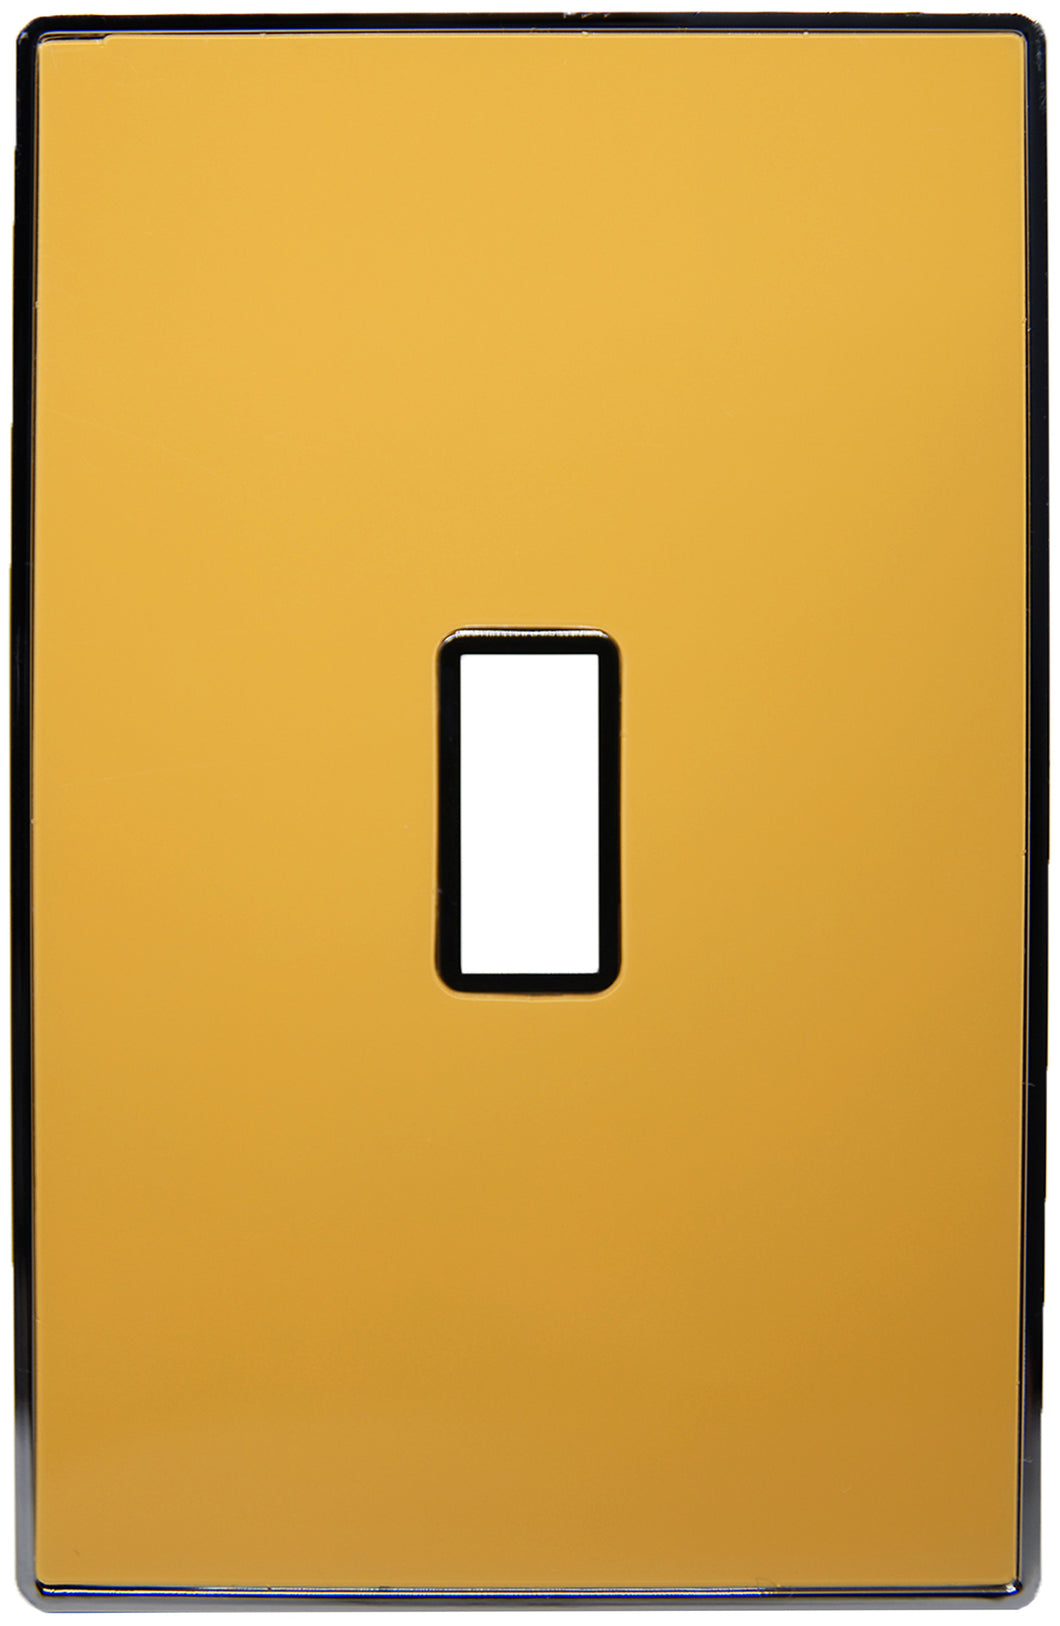 UC06 Mustard/ 1-Gang Toggle Cover & Chrome Frame